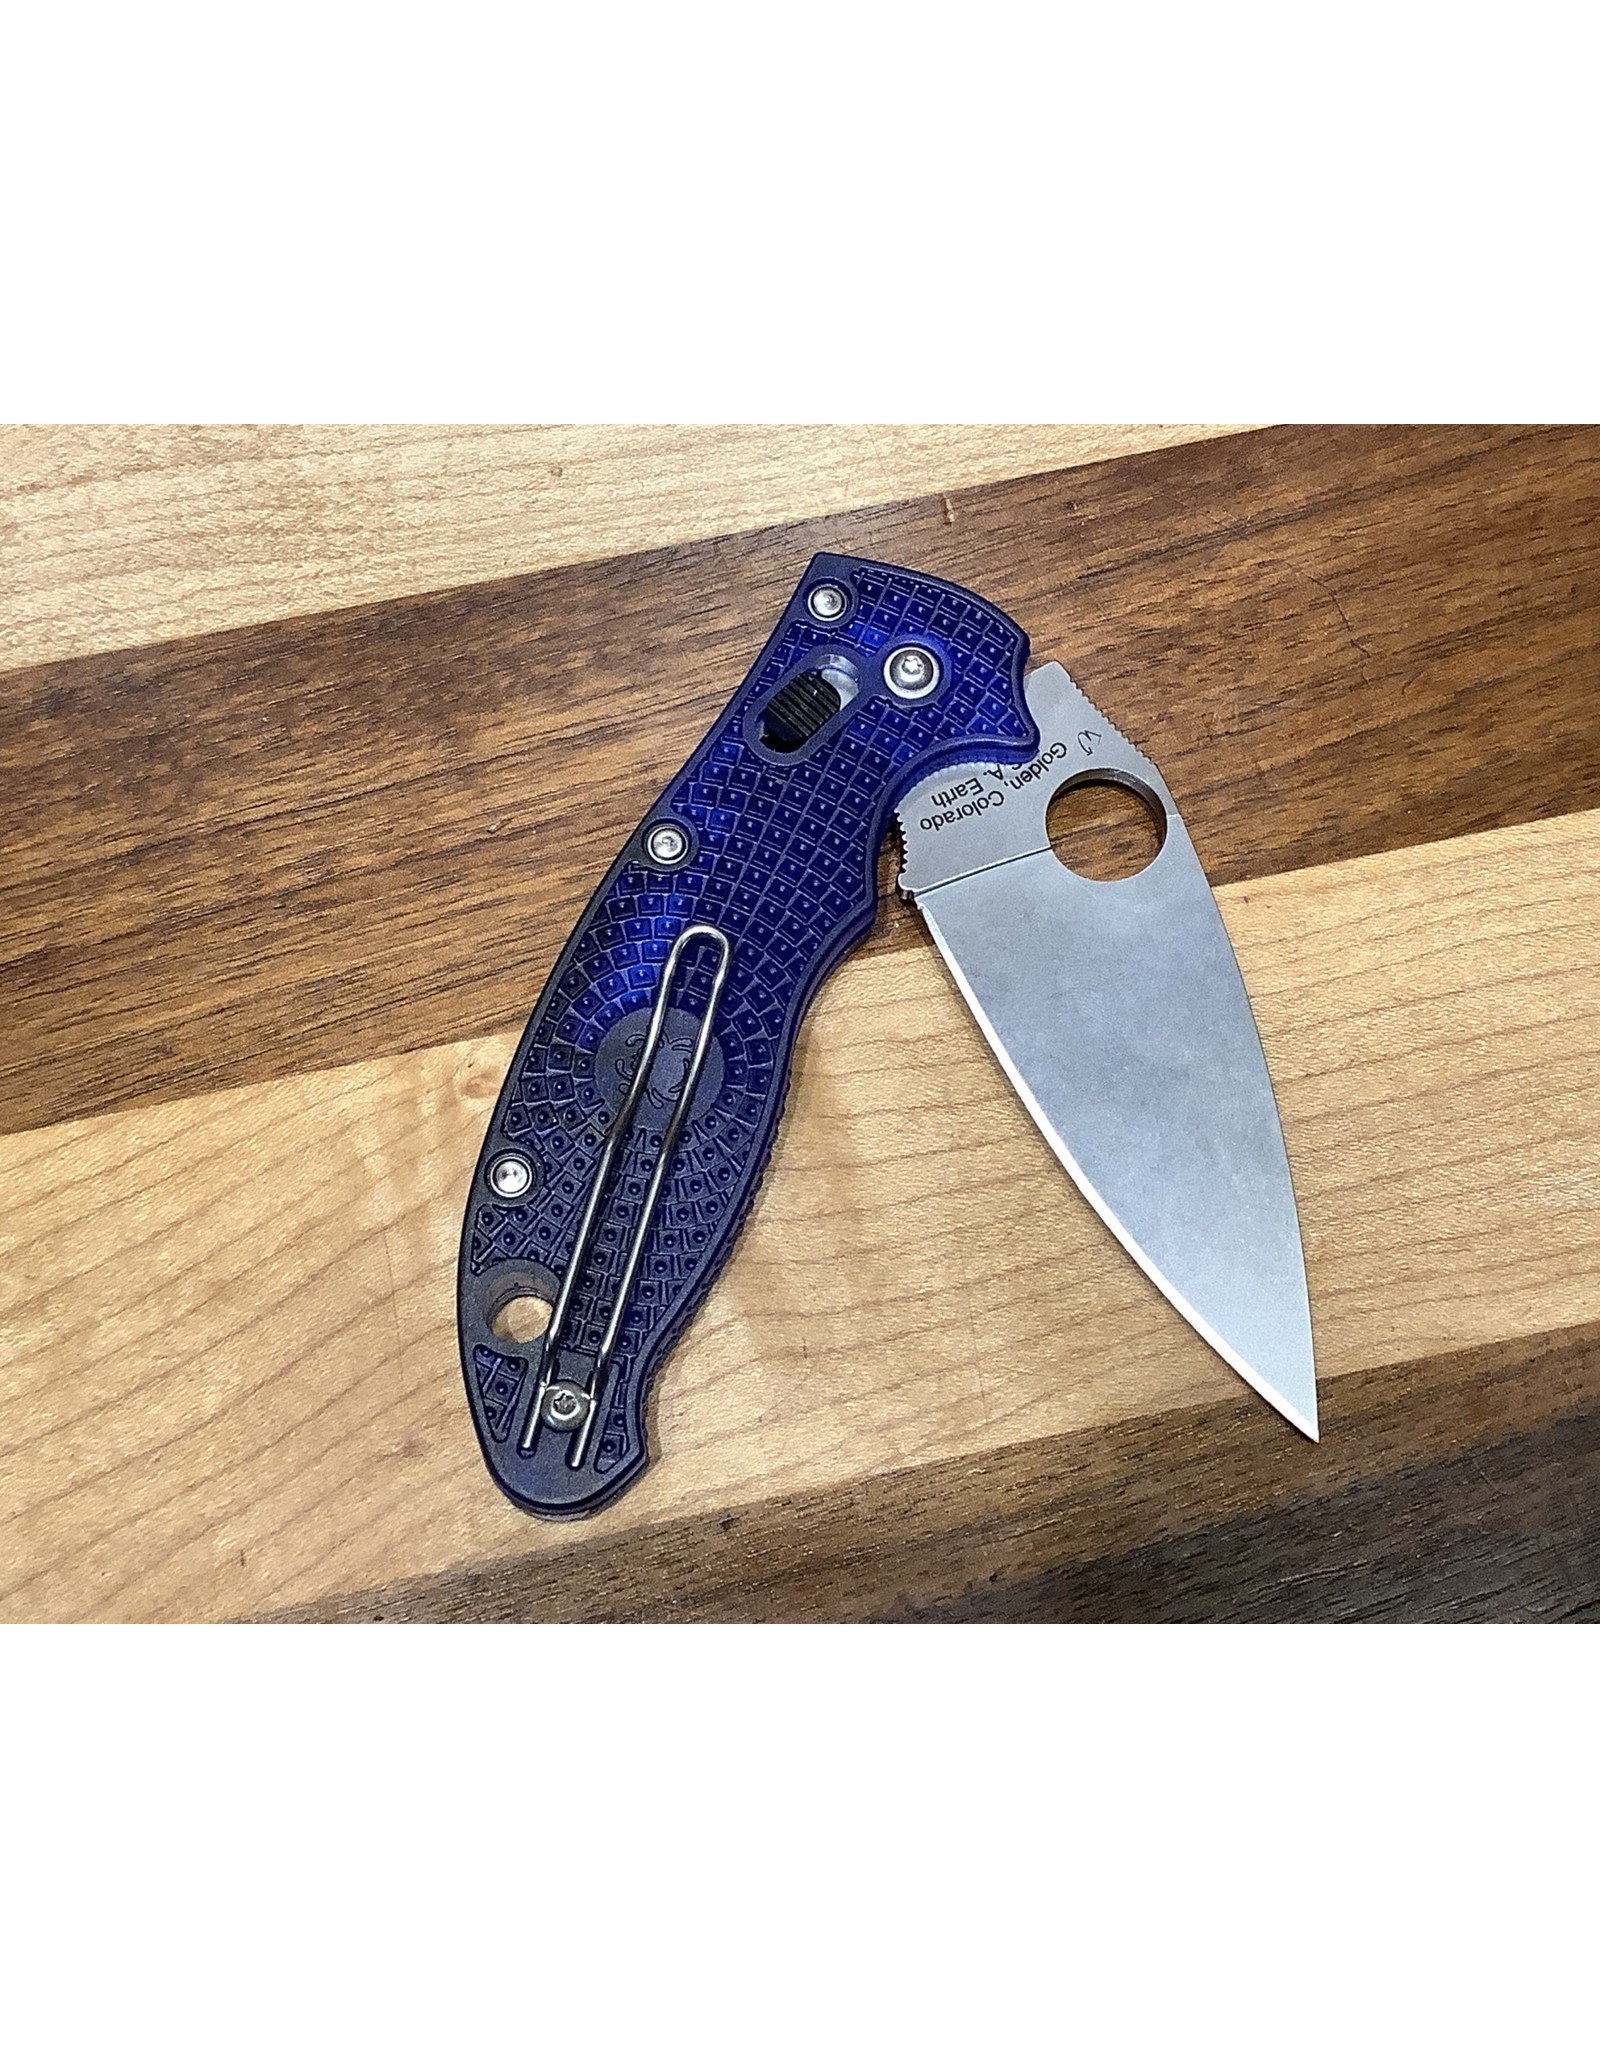 Spyderco Manix 2 in CTS BD1N and Tanslucent Blue